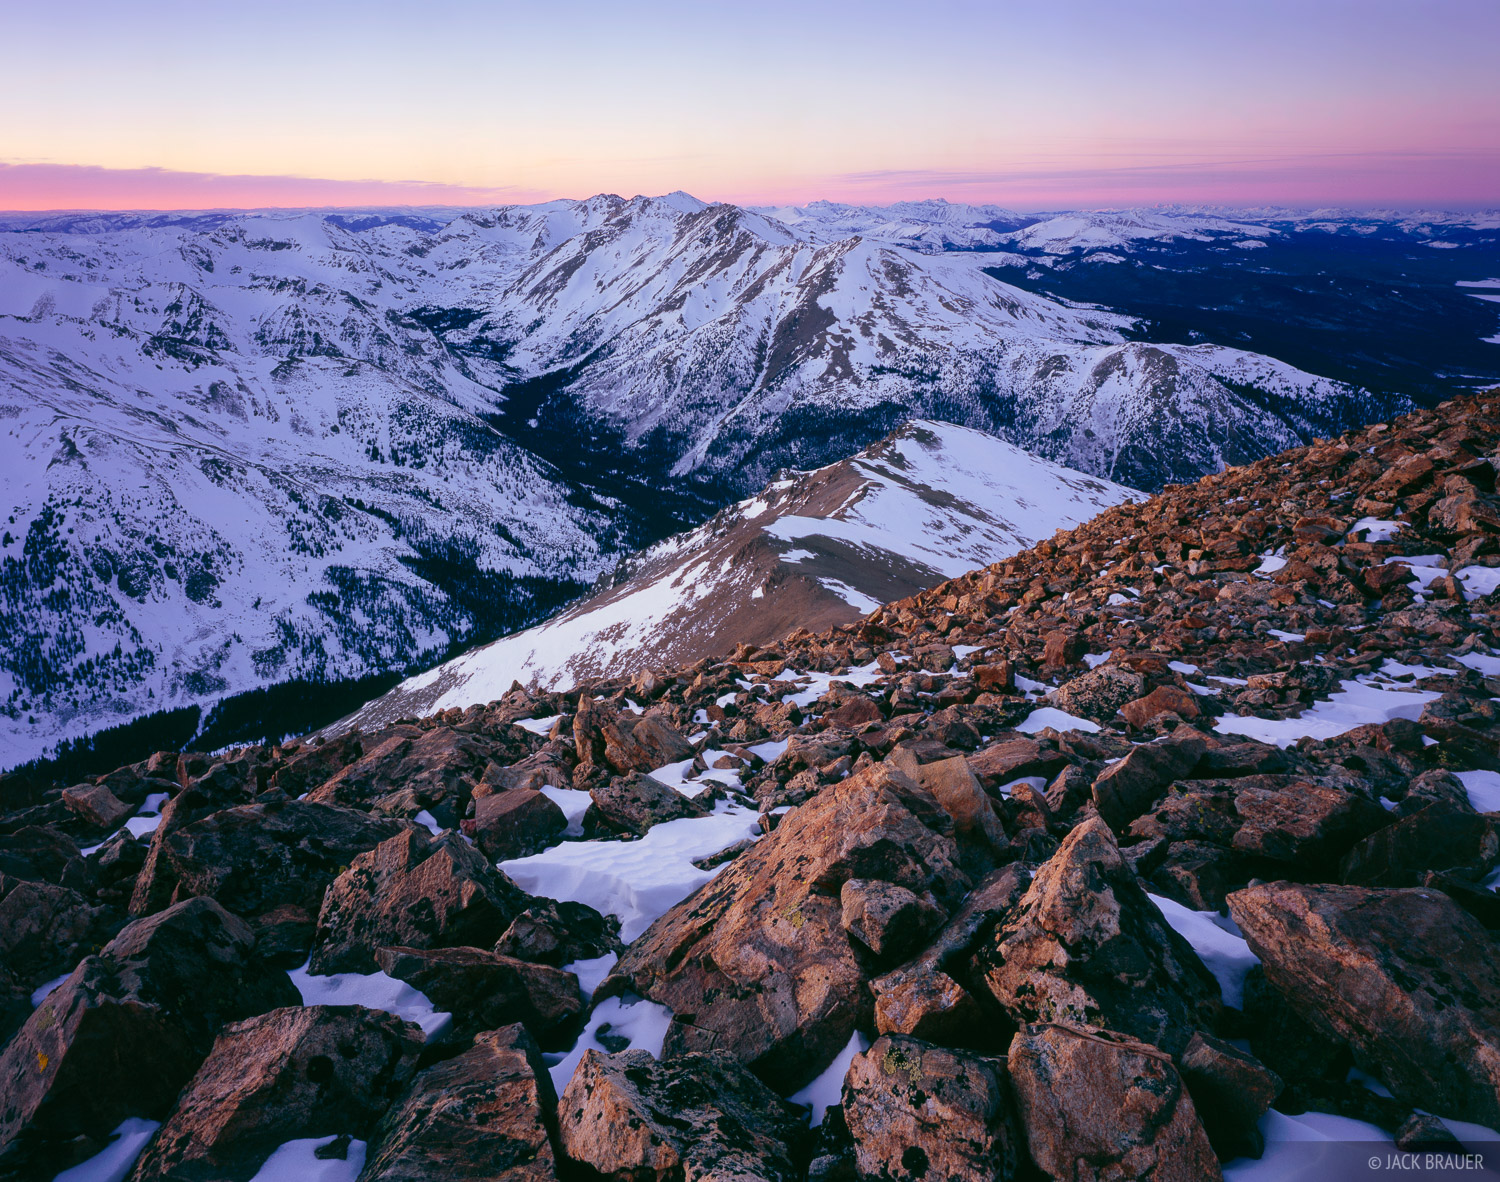 Mount Massive, Mount Elbert, Sawatch Range, fourteeners, sunset, Colorado, photo